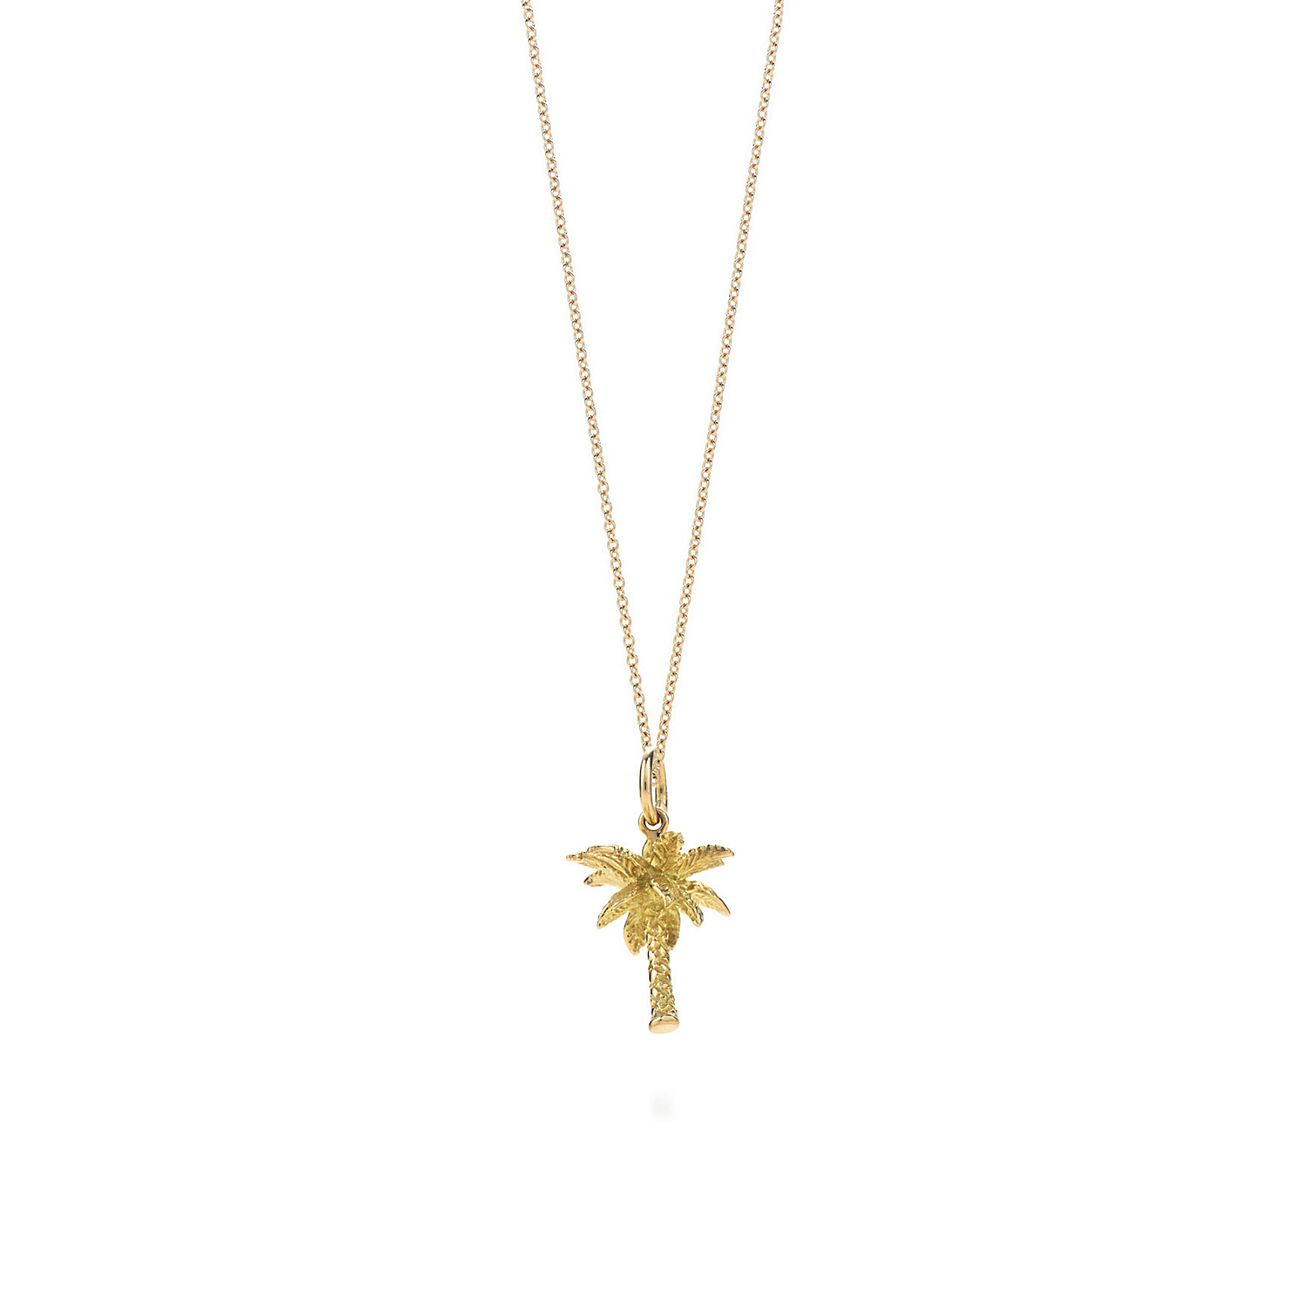 Palm tree charm 18k gold on a chain tiffany co palm tree charm pendant mozeypictures Gallery